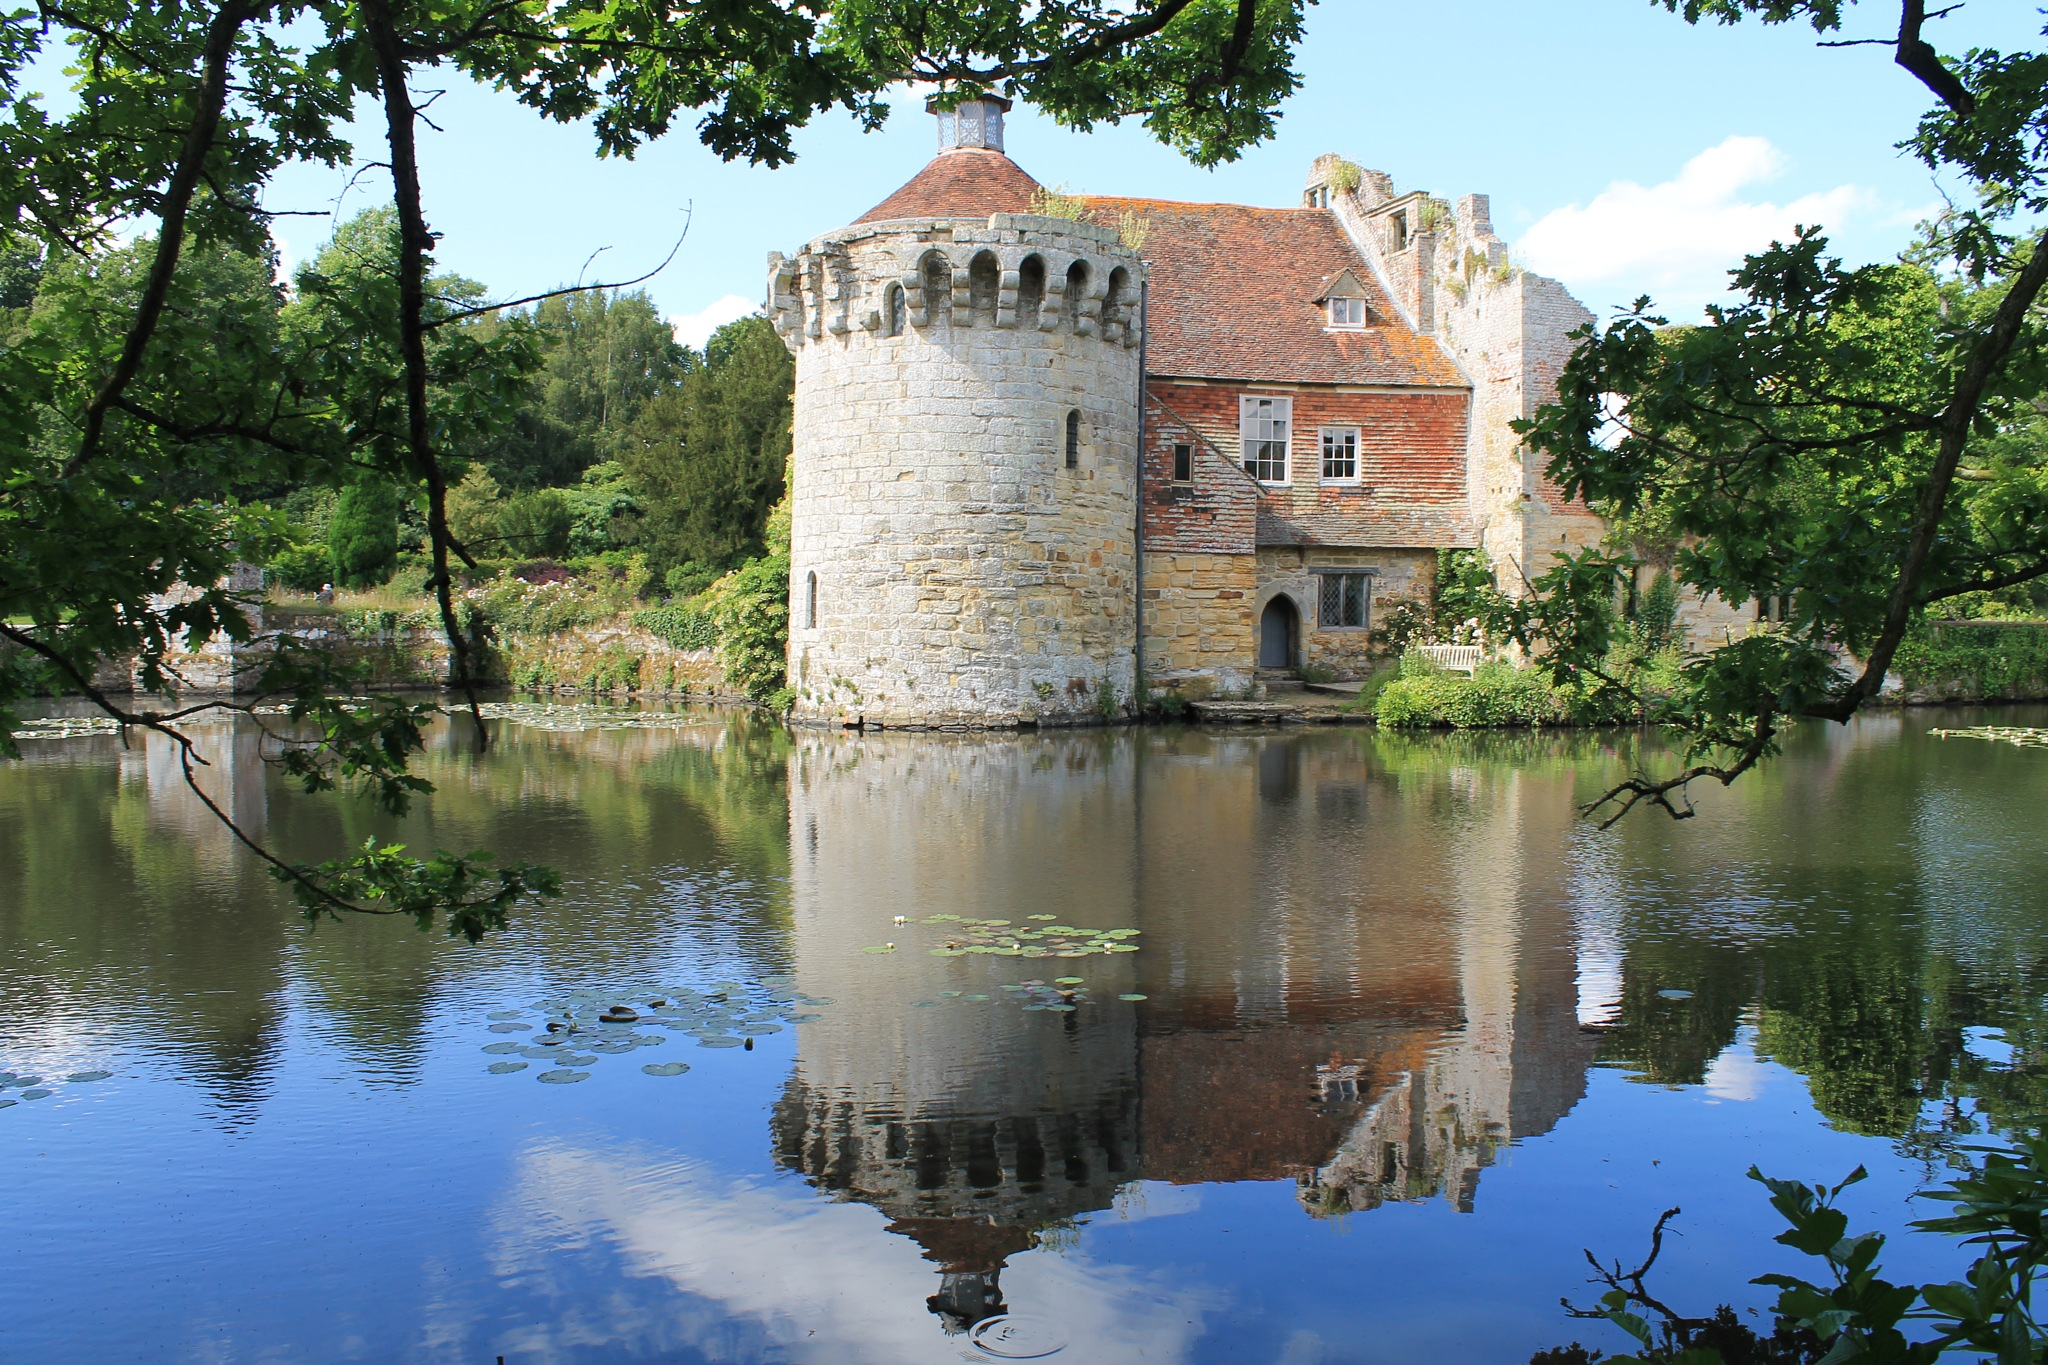 Scotney Old castle by Paul Bownas